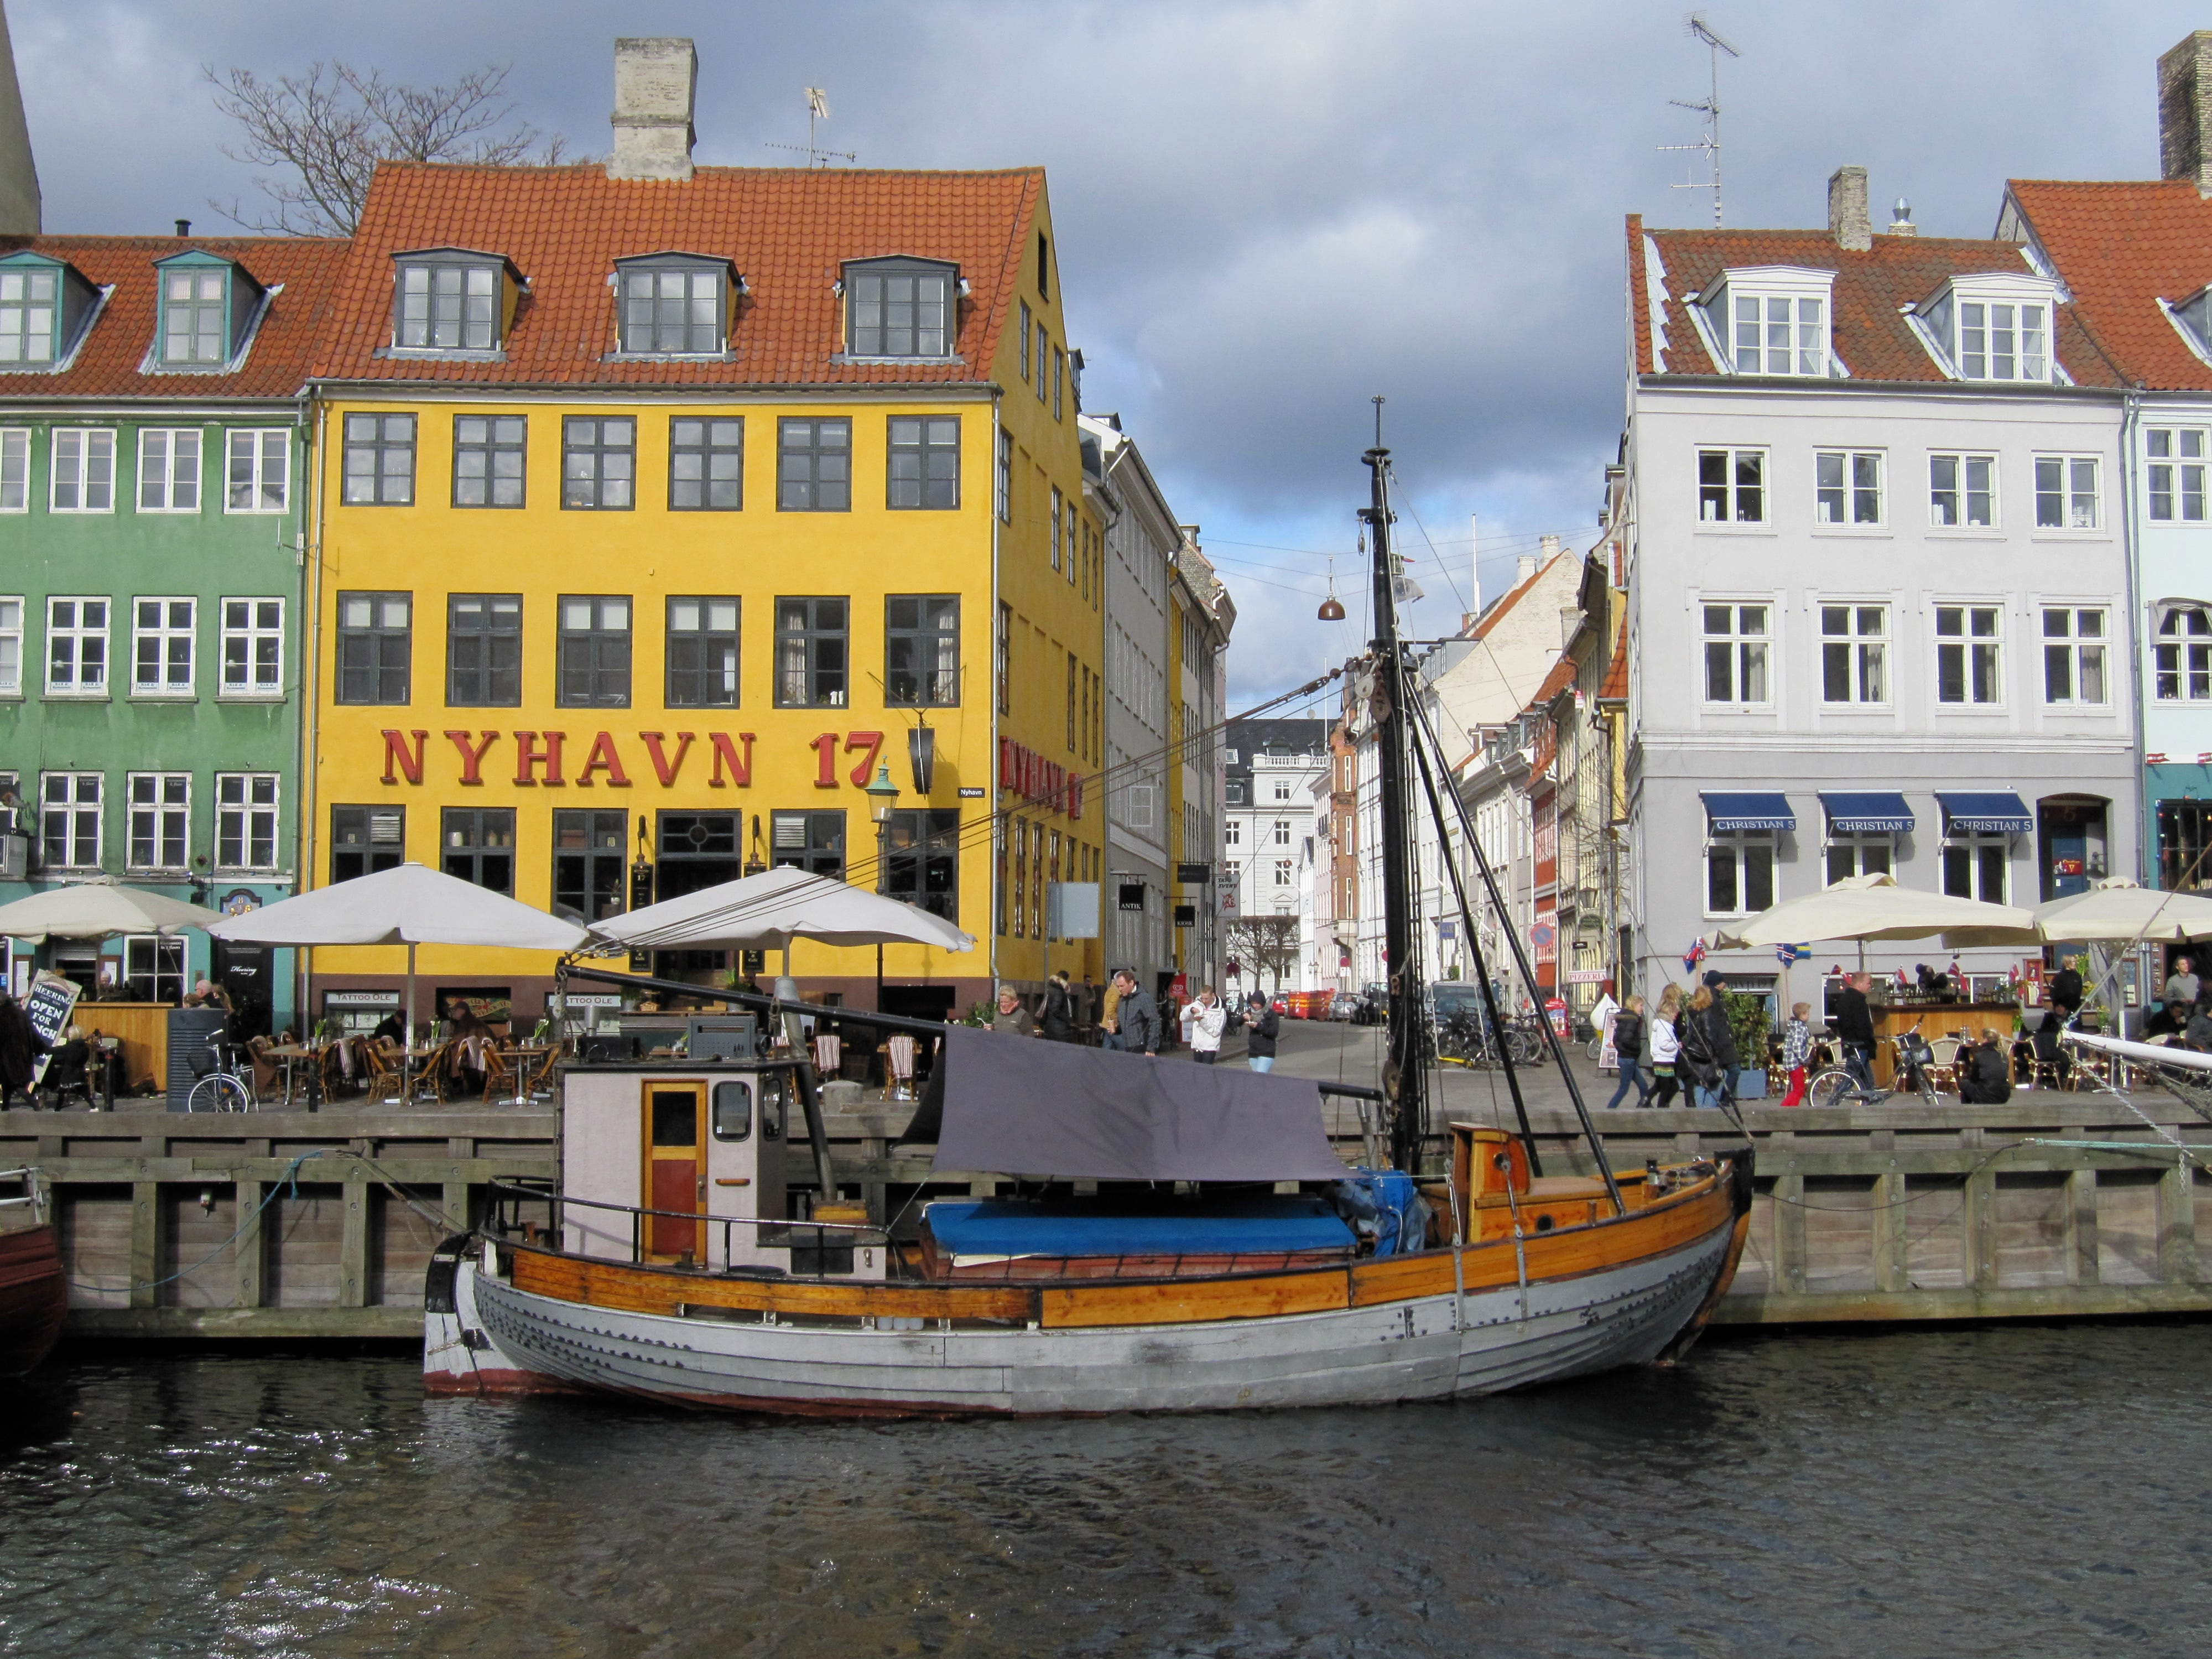 """Travel -- Copenhagen -- The historic port area of Nyhavn, now a tourist mecca filled with restaurants and sidewalk cafes.-- HAPPYDANES: Danish people are the happiest people in the world, several studies say, due to their quality of life, a government that offers good medical care and vacations and even pays students to stay in high school, strong family ties and an enjoyment of life. Probably good genes help, too. We visit Copenhagen, a picturesque and compact city whose residents also are so eco-conscious that a third bike to work. Amid buildings dating back to medieval times and the historic port of Nyhavn, now filled with outdoor cafes, we meet smiling and helpful Danes and even participate in a program open to anyone called """"Dine with the Danes."""" Yes, the family, including a charming high schooler, seemed happy as they served mountains of fish – smoked, pickled, fried – washed down with schnapps, beer and wine. Y (Via MerlinFTP Drop)"""